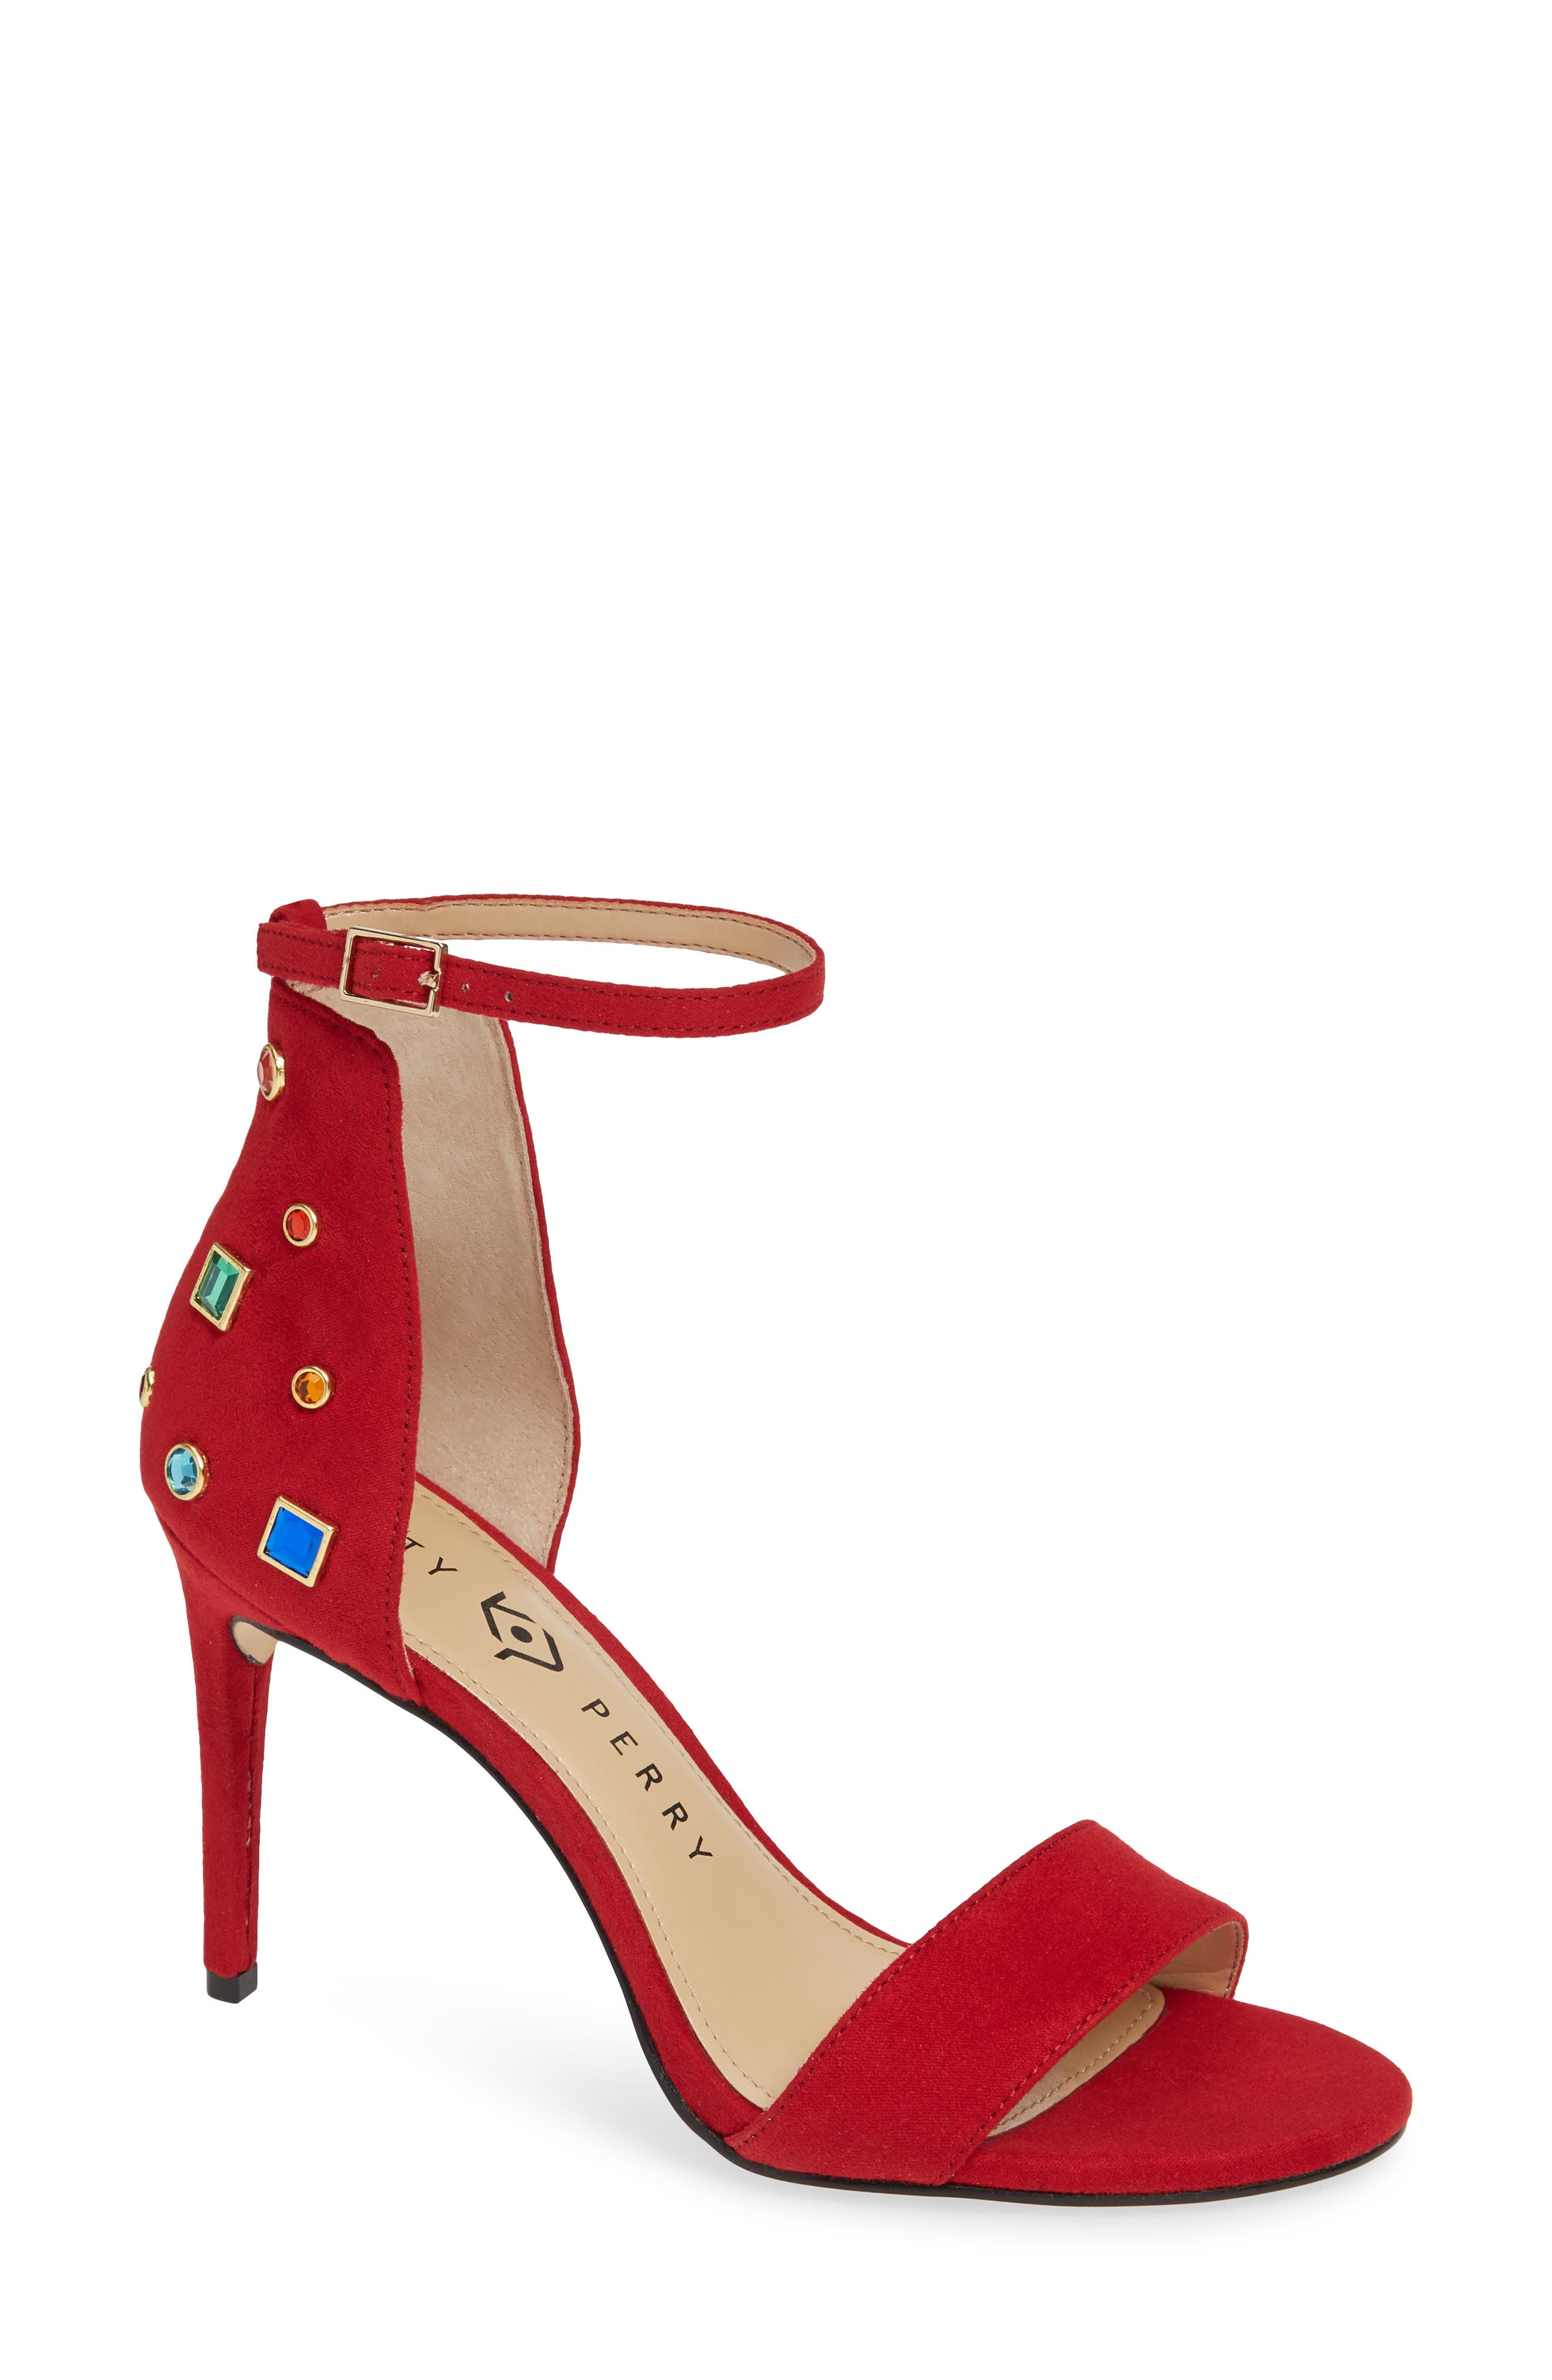 KATY PERRY Jewel Ankle Strap Sandal in Red